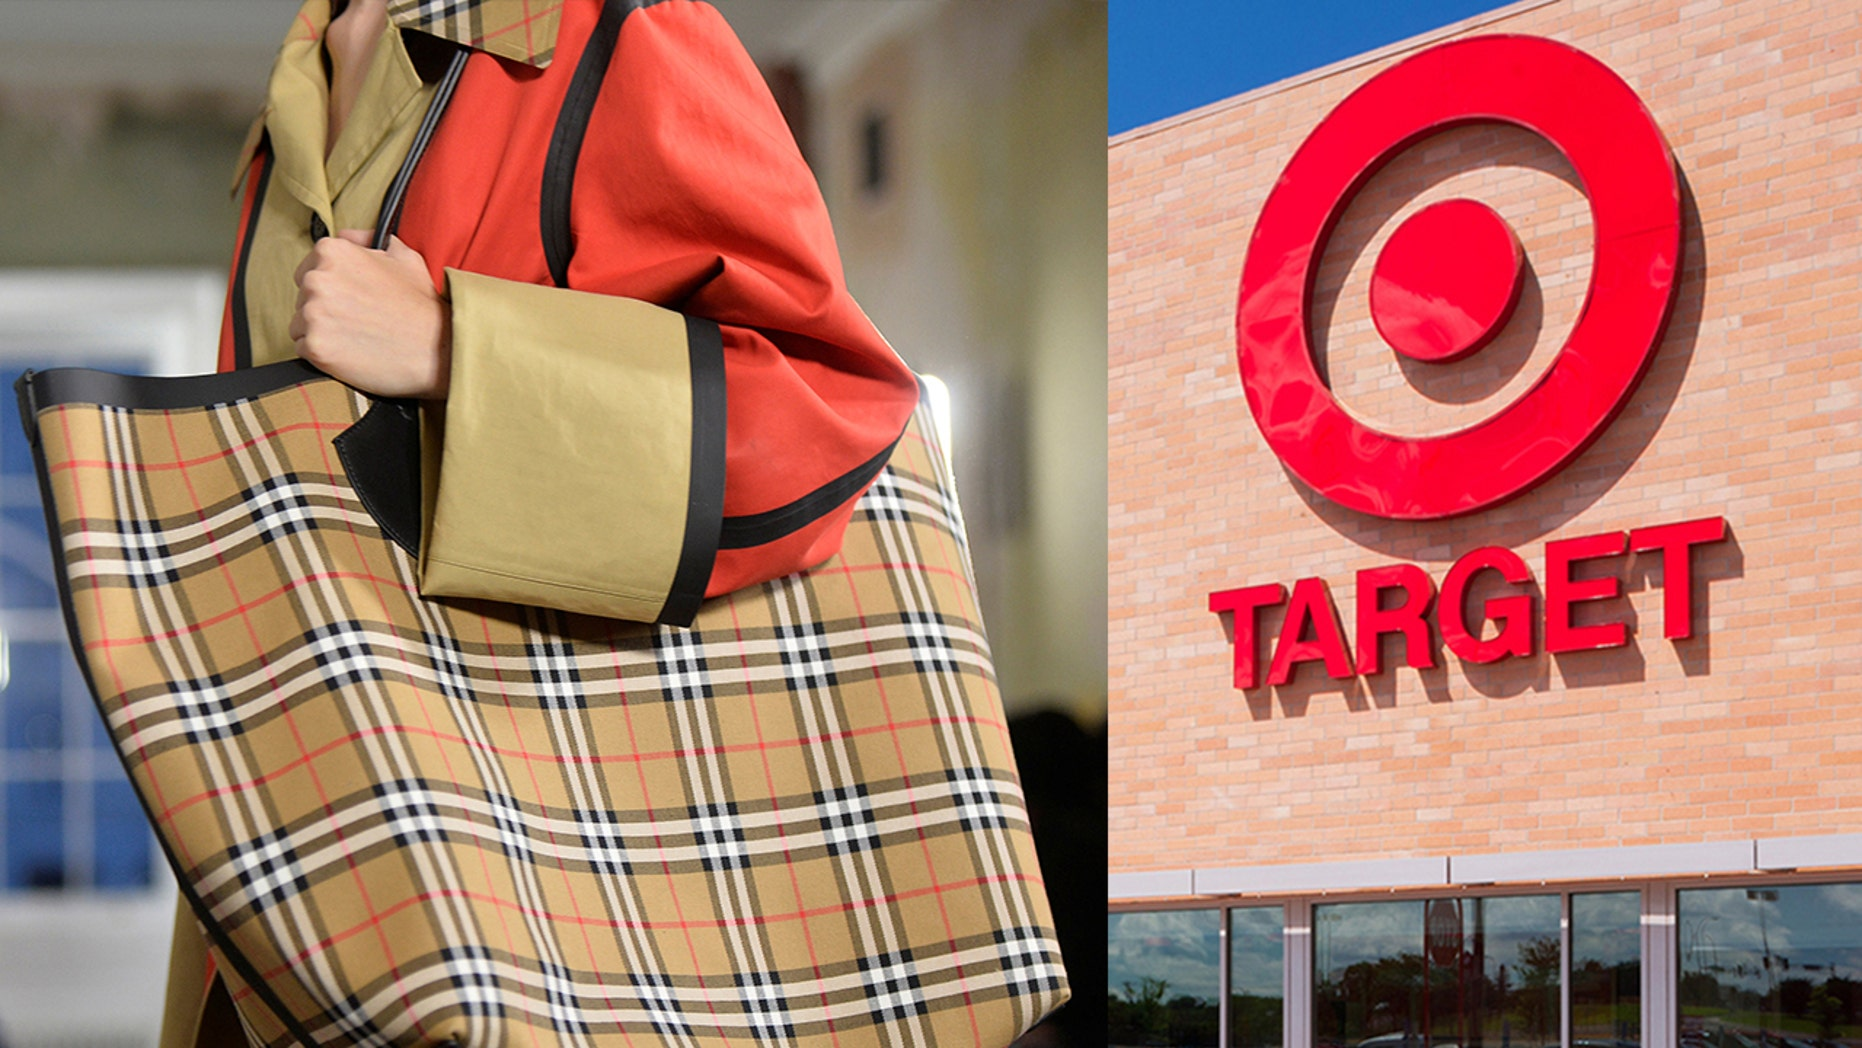 The British fashion house seeks an injunction barring Target from selling any infringing products and monetary damages of up to $2 million.